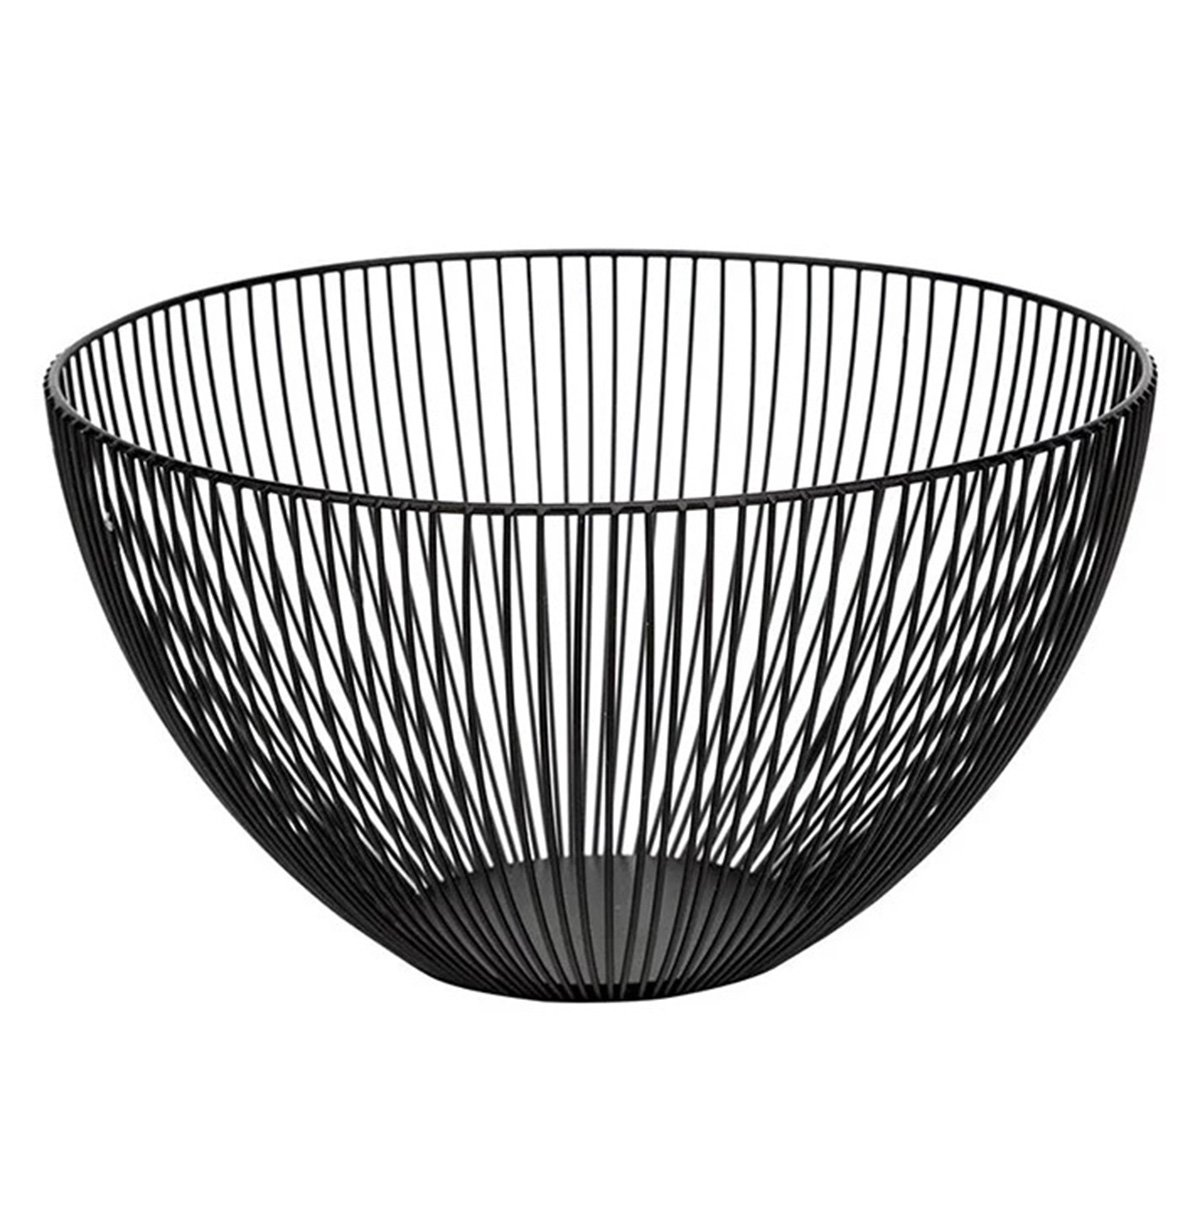 Wire Fruit Basket, Round Black Metal Fruit Vegetable, Egg, Bread Storage Bowl Holder Stand for Kitchen Counter, Cabinet and Pantry - Large